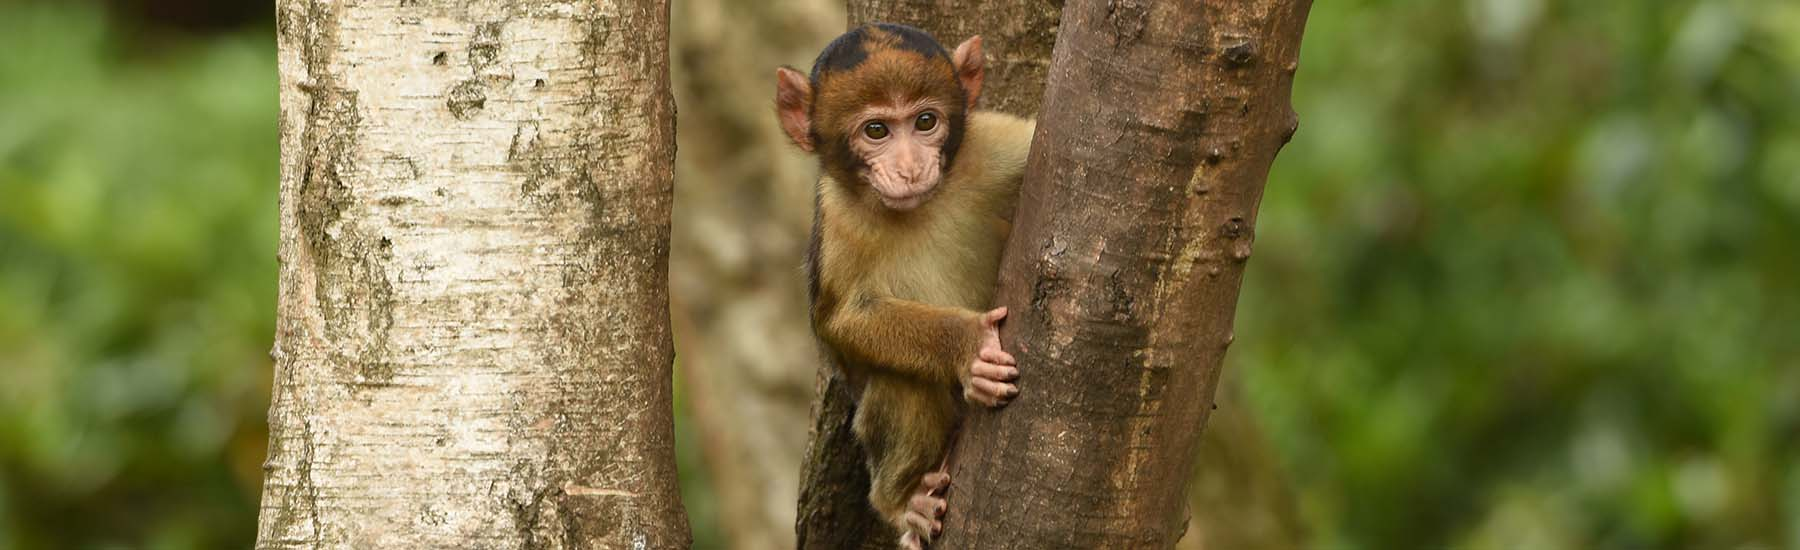 Monkey Forest Ideal For Wholesome, Intergenerational Fun